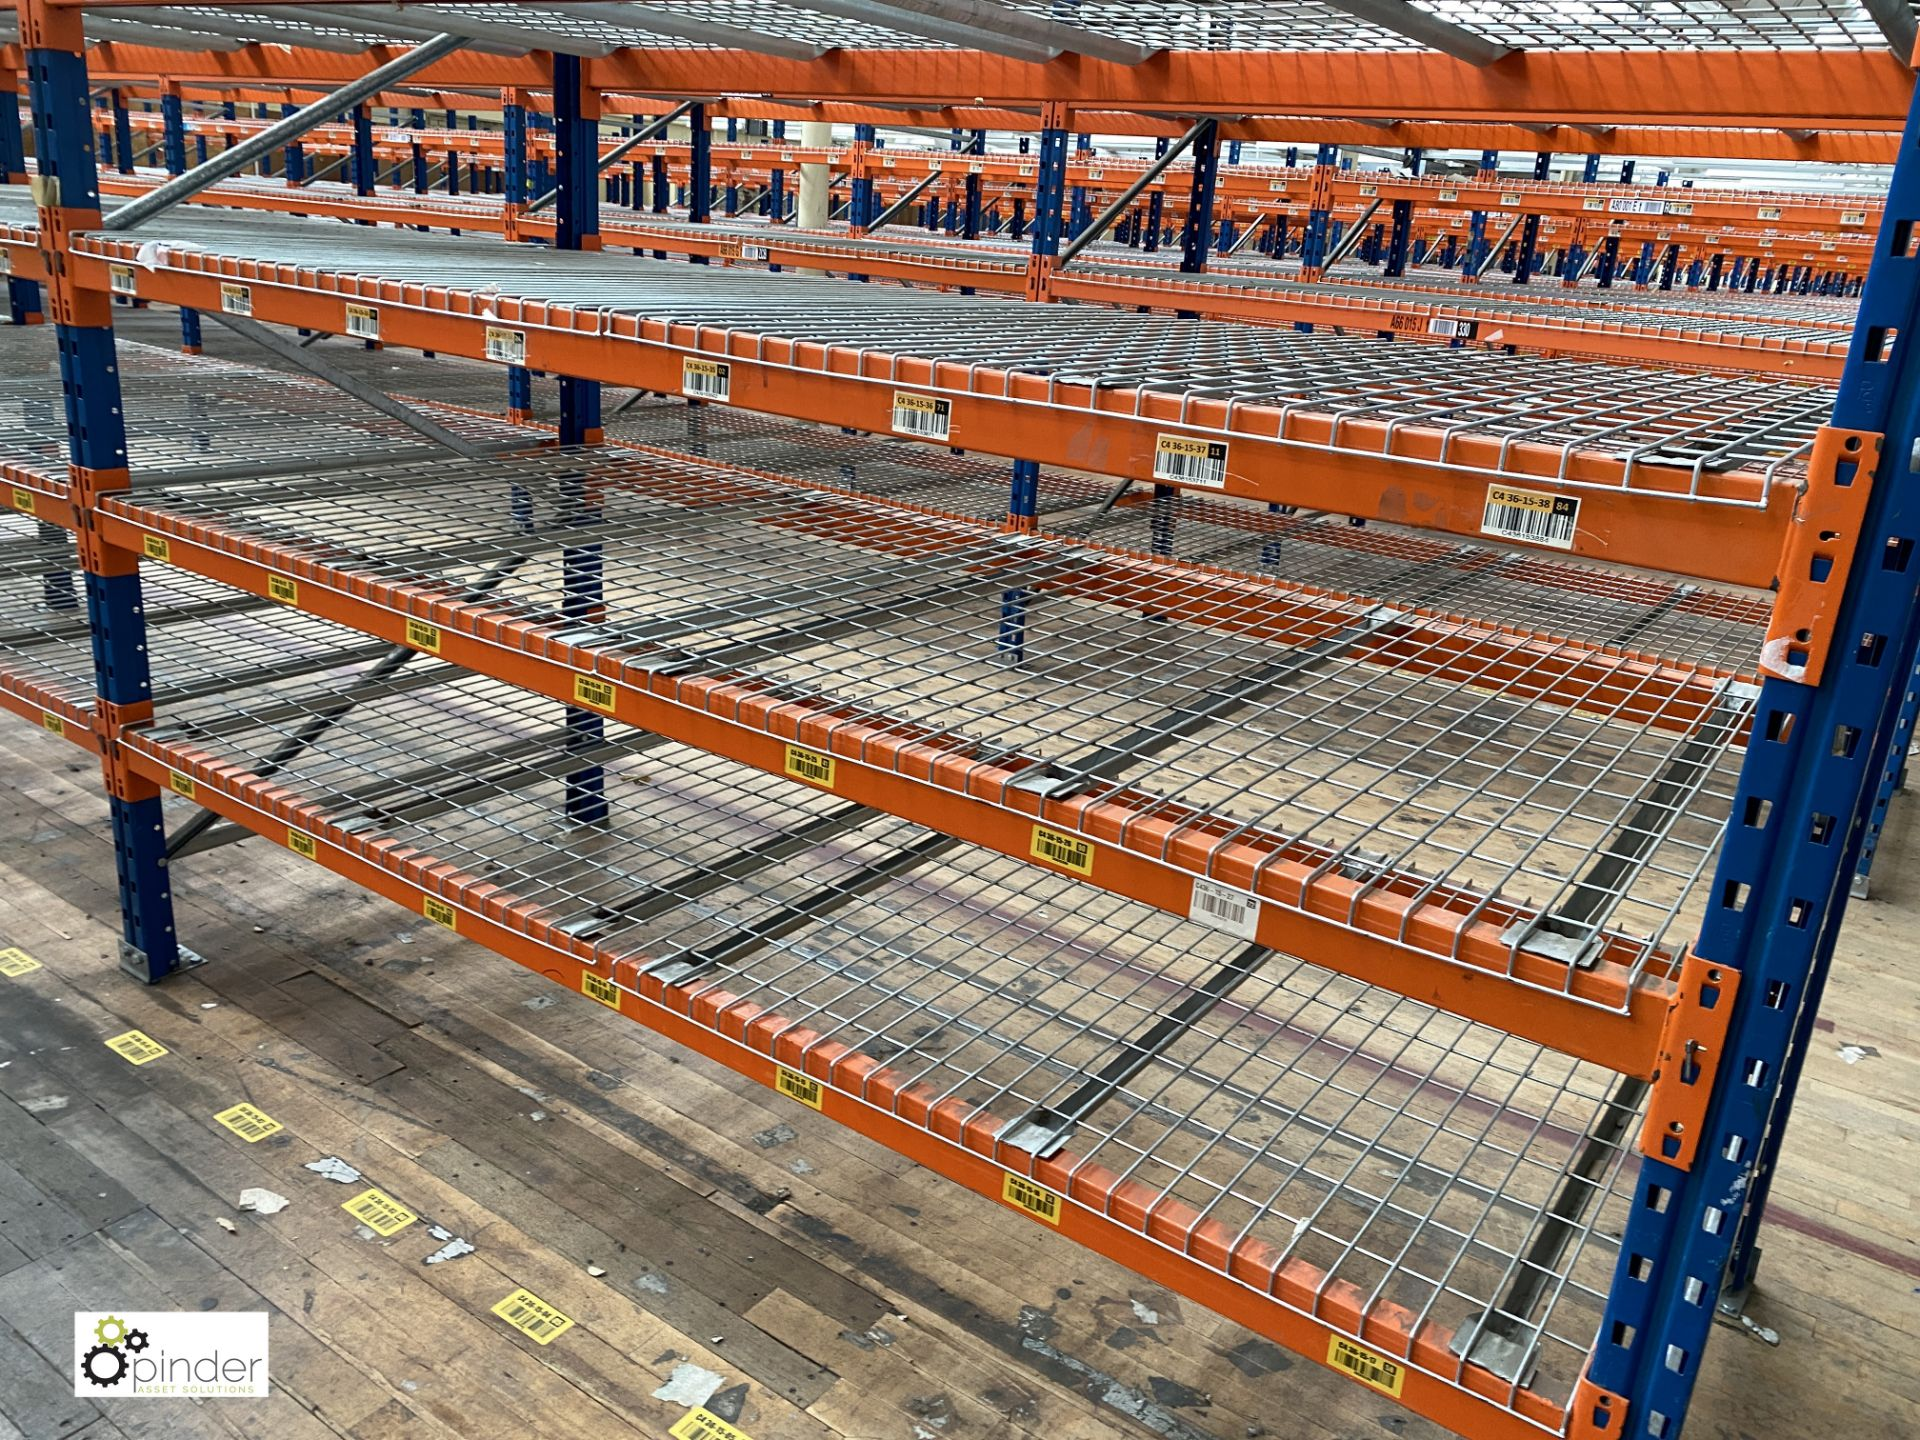 8 bays PSS 2K85 16 boltless Stock Racking, comprising 9 uprights 2400mm x 1200mm, 64 beams 2700mm, - Image 3 of 5